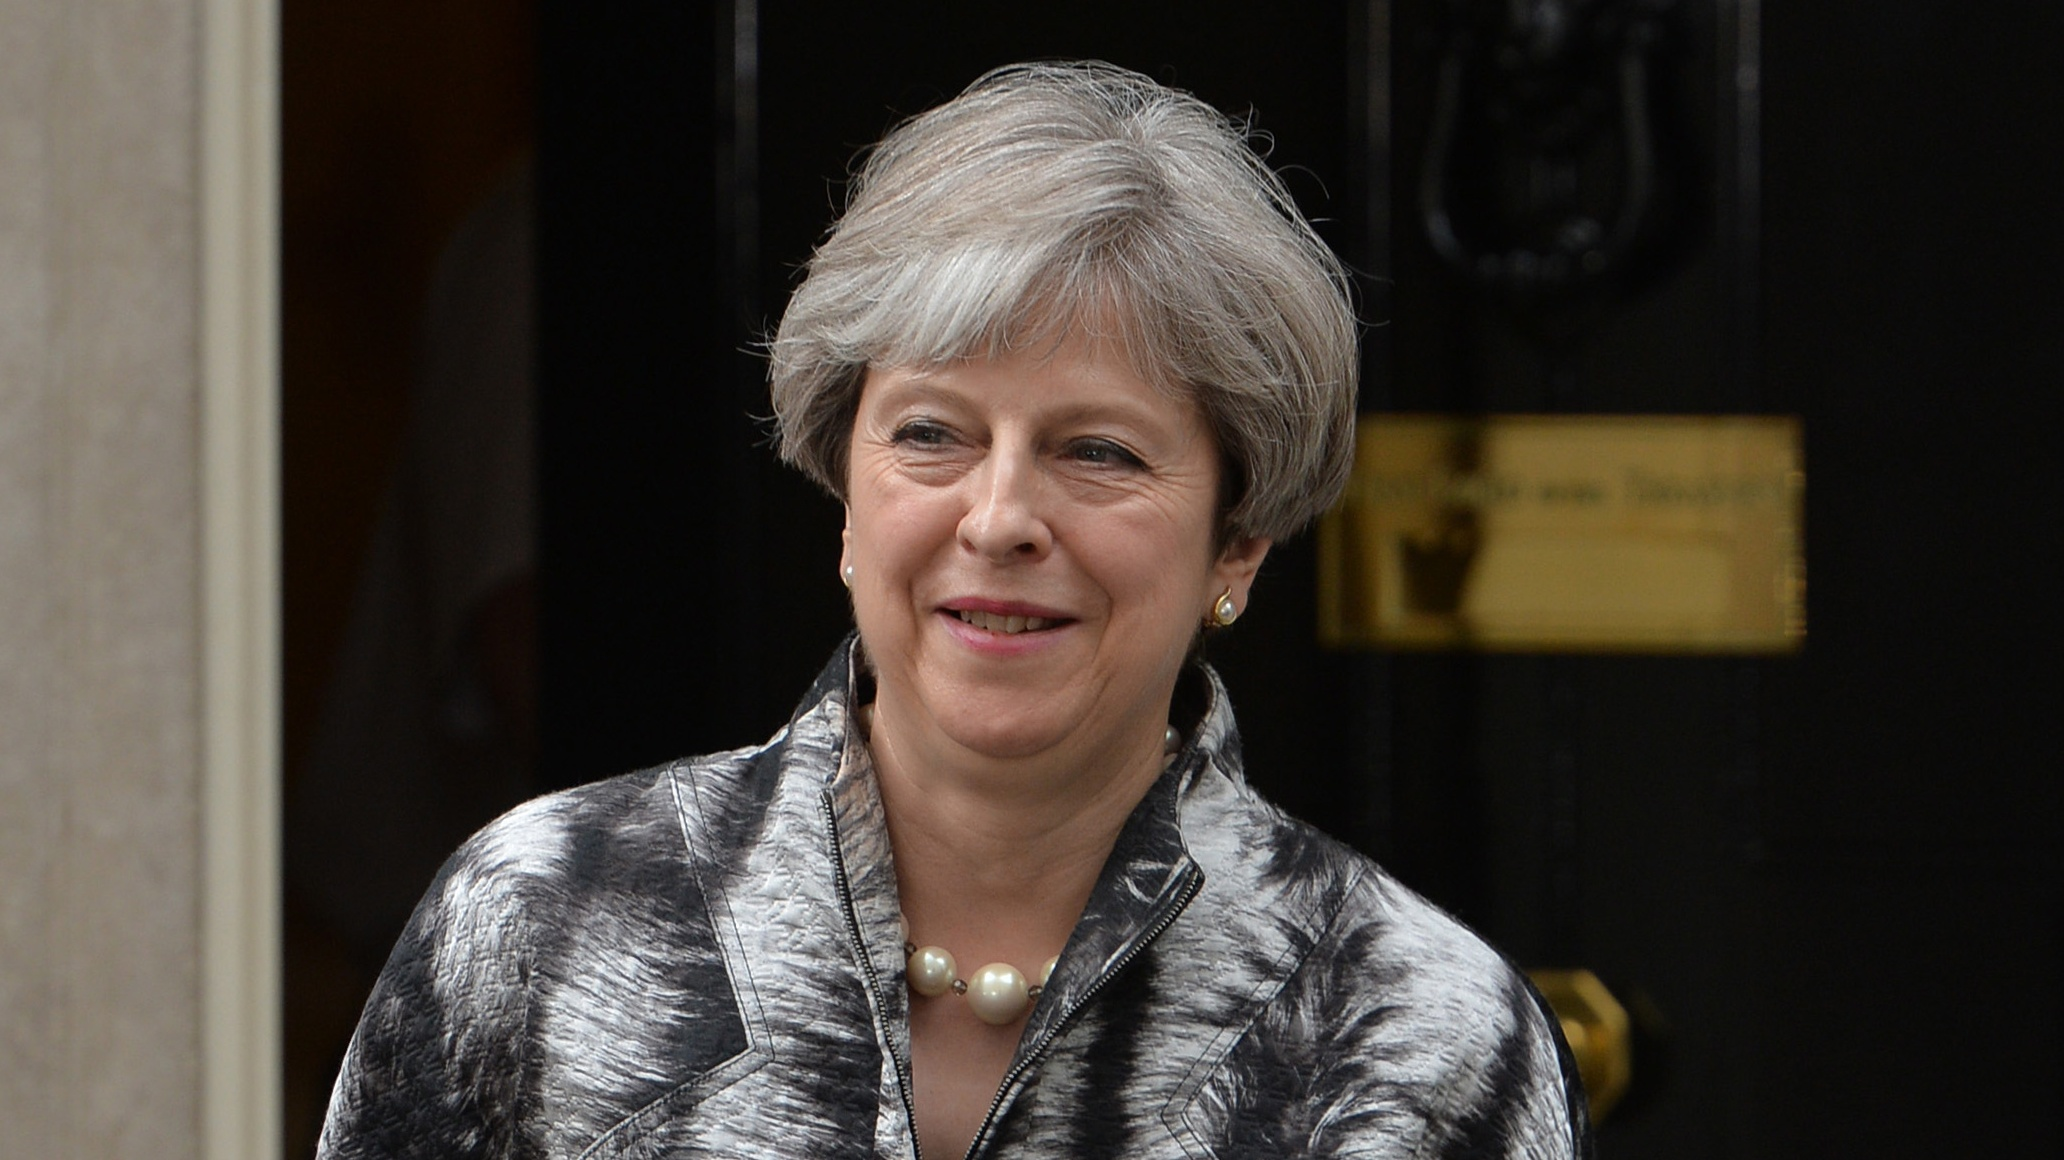 Theresa May to 'get on with job' after ignoring calls for resignation